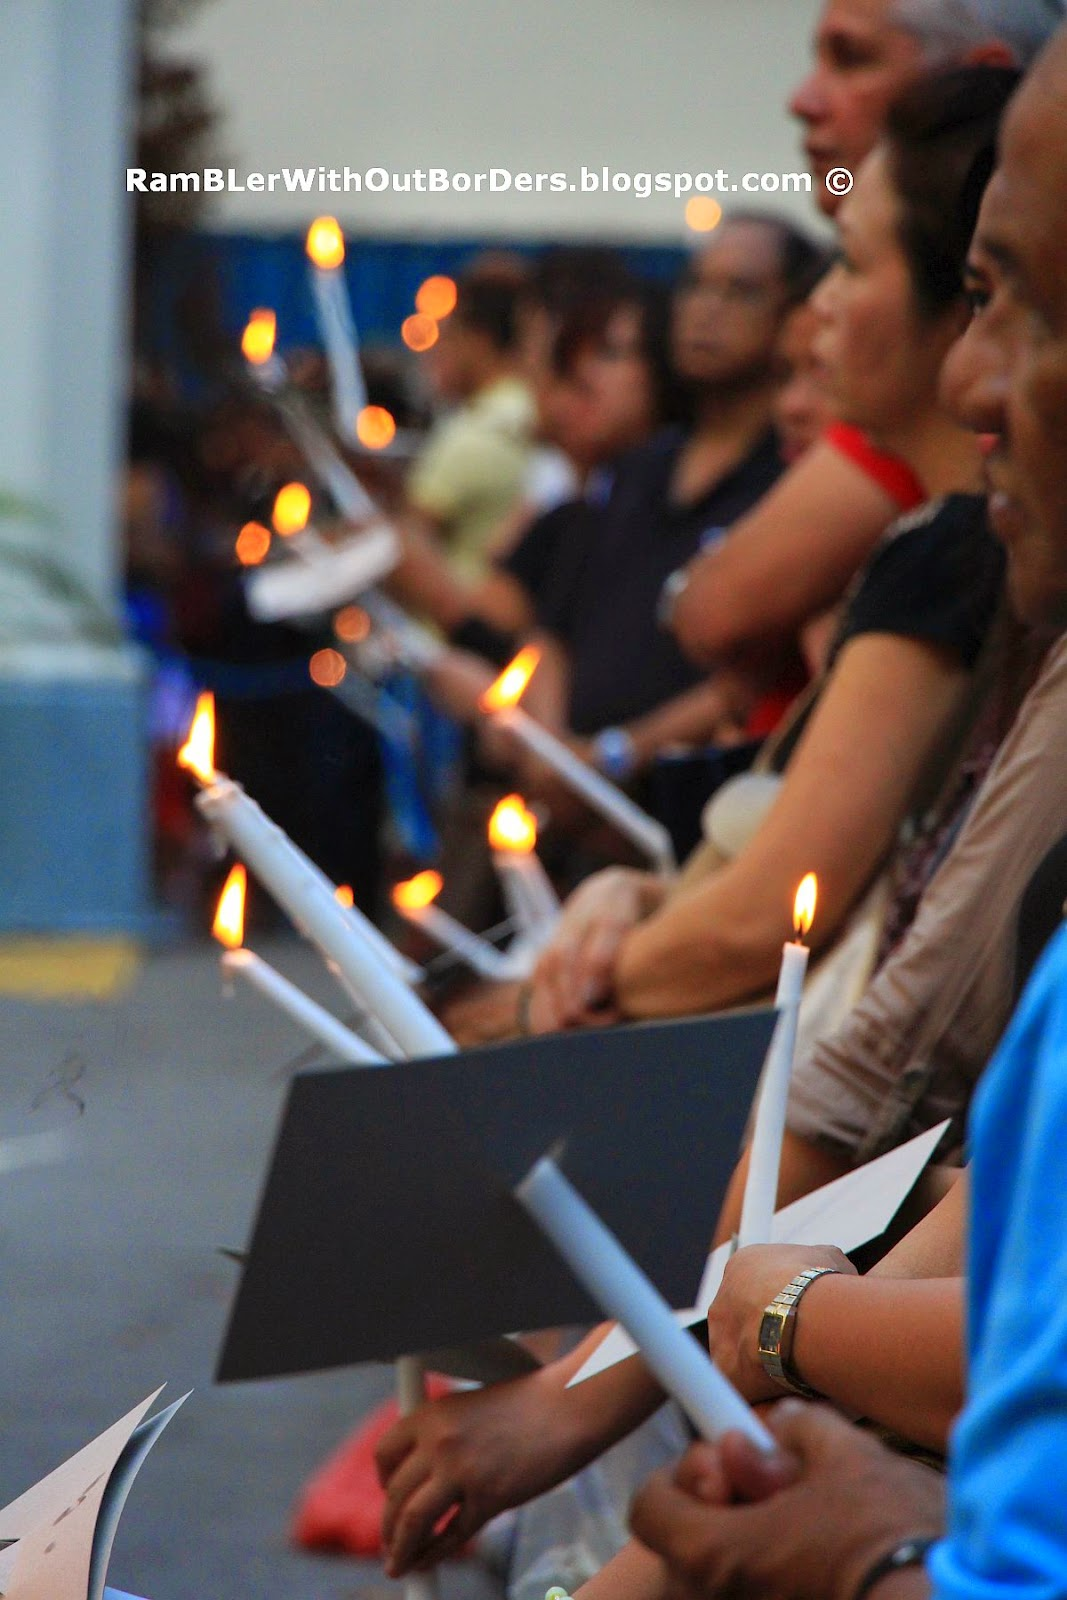 Attendants of Good Friday Candle-Light Procession, St Joseph's Church, Victoria St, Singapore